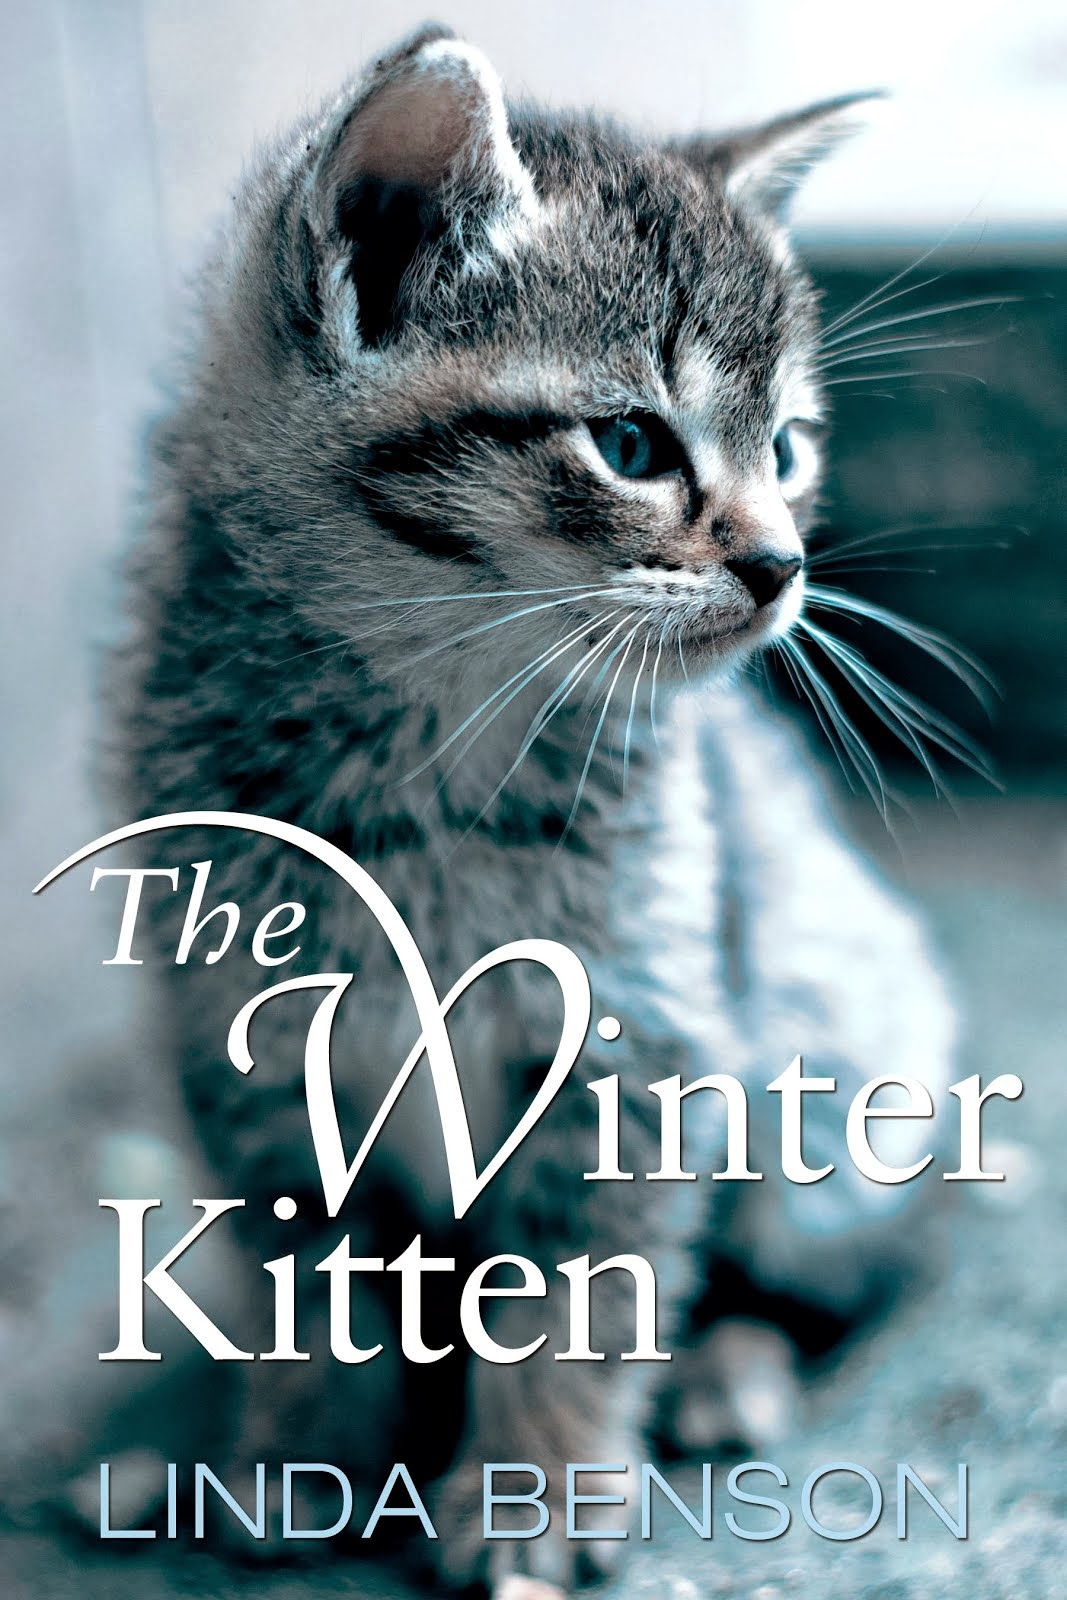 Linda Benson--The Winter Kitten